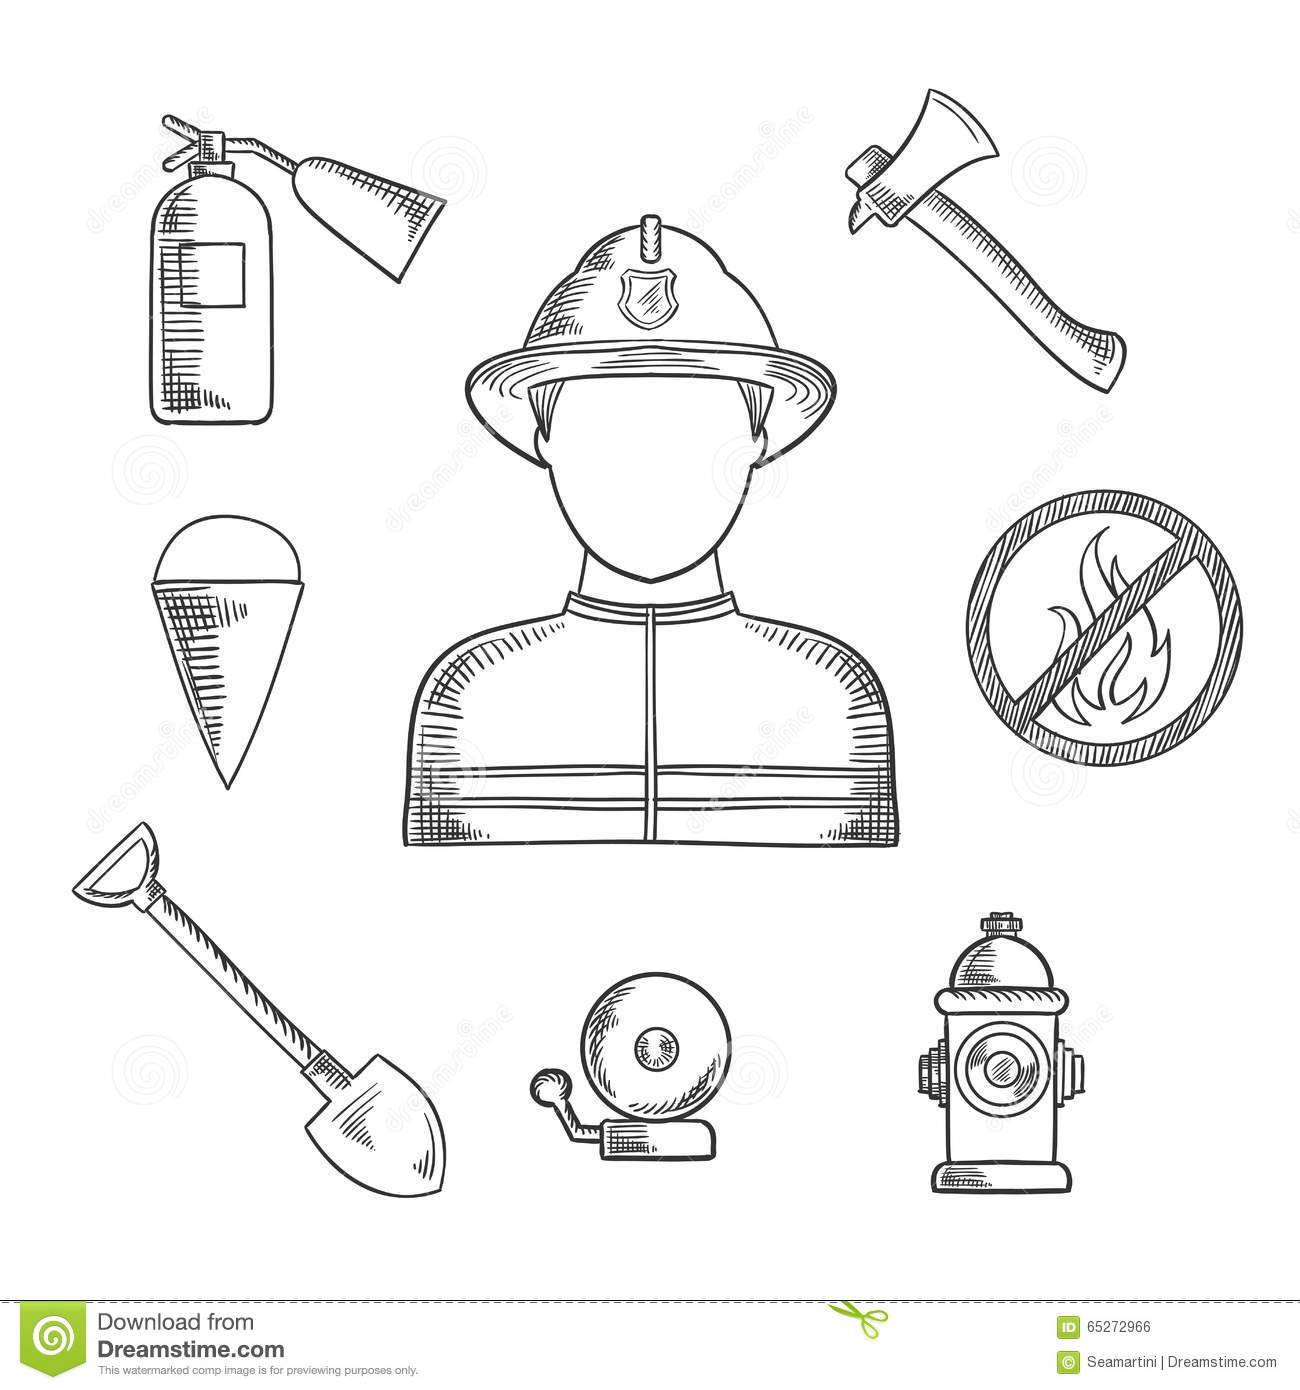 Firefighter Profession Hand Drawn Sketch Icons Stock